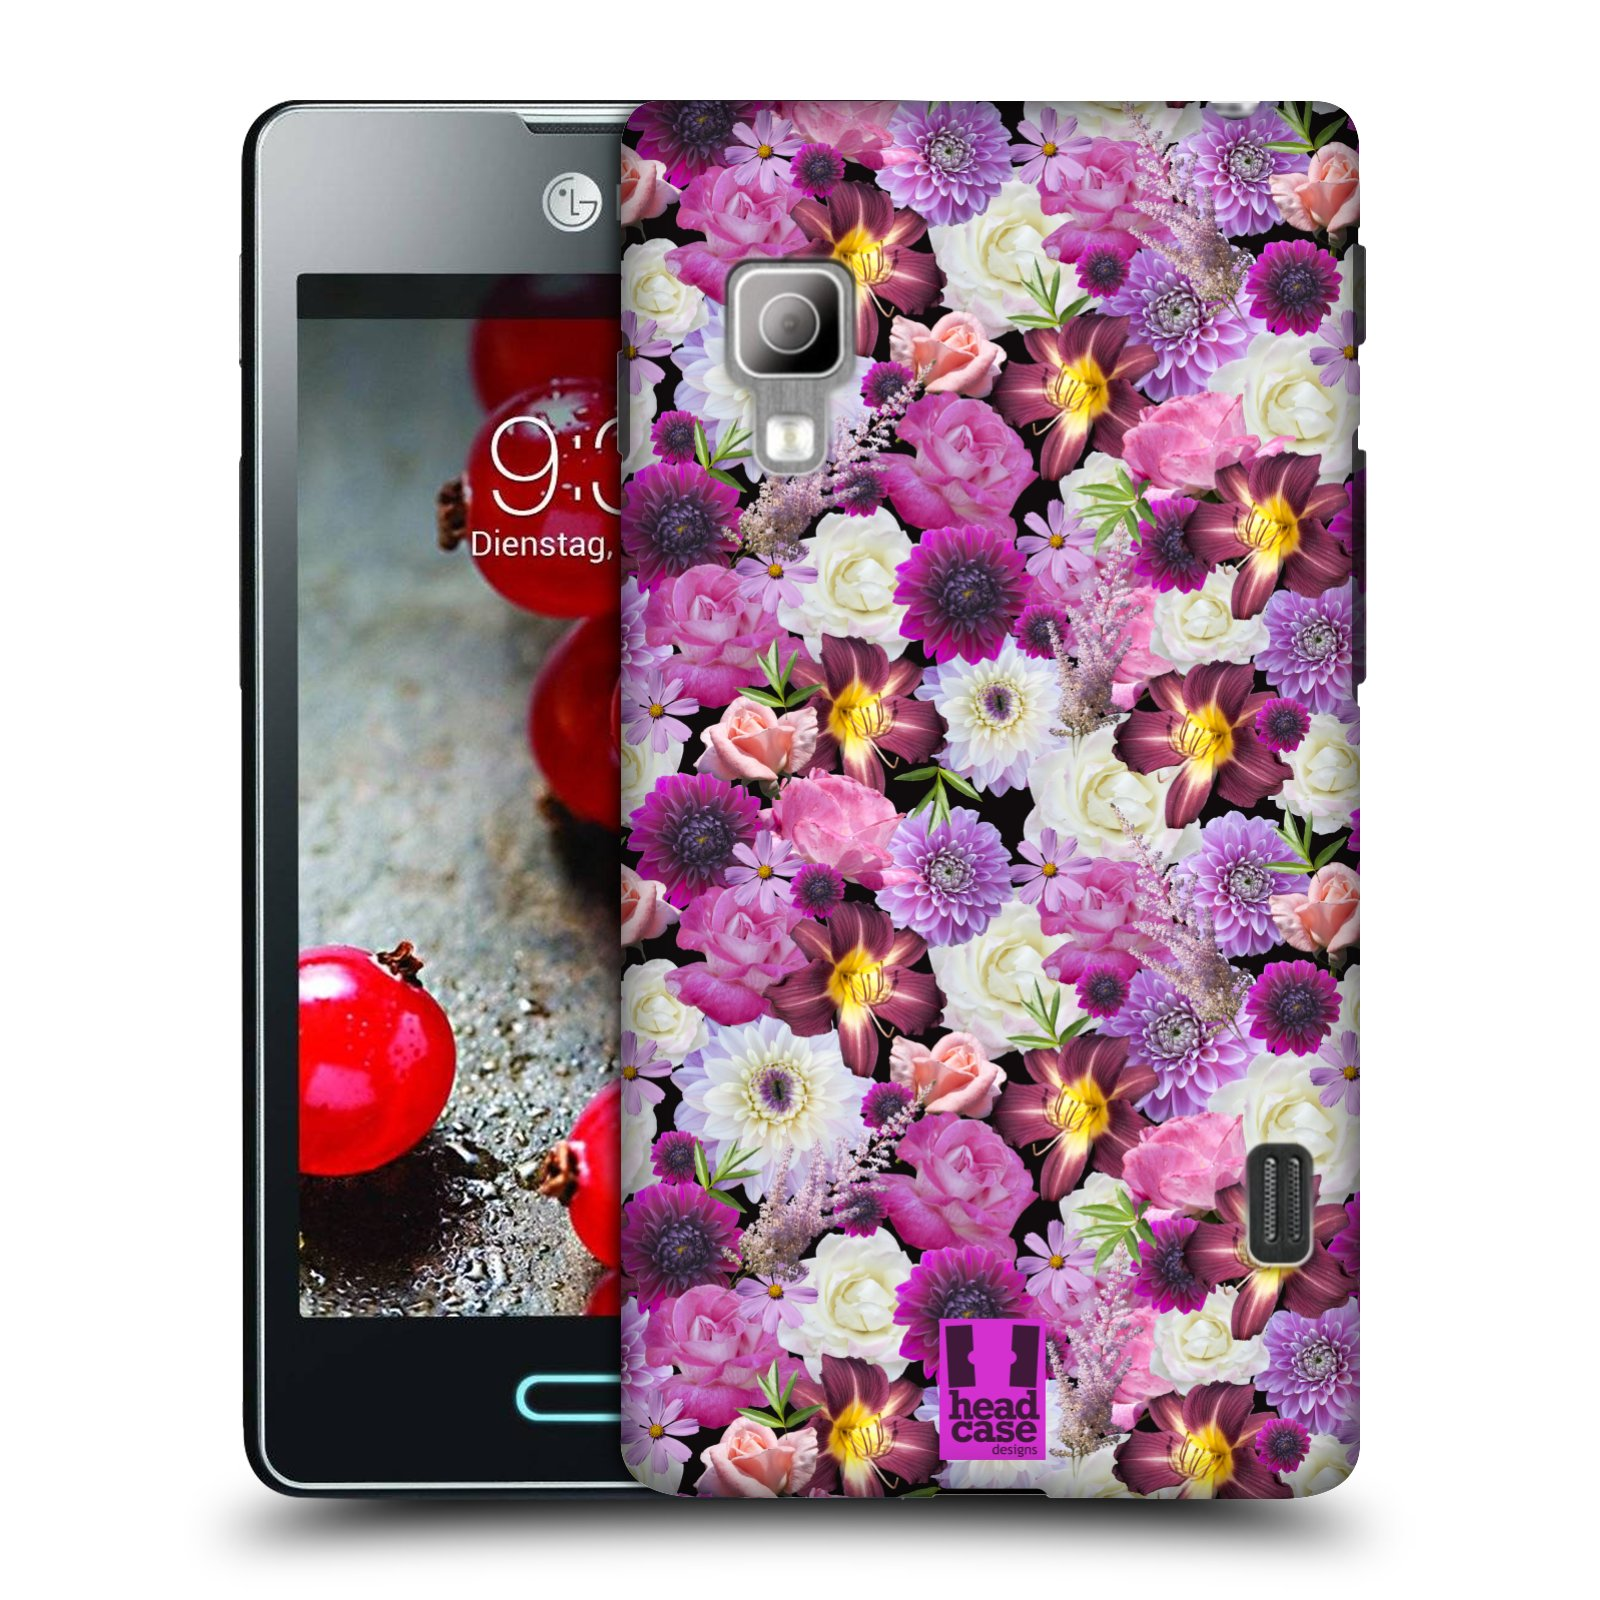 Head case designs flowers case cover for lg optimus l5 ii - Lg fridge with flower design ...